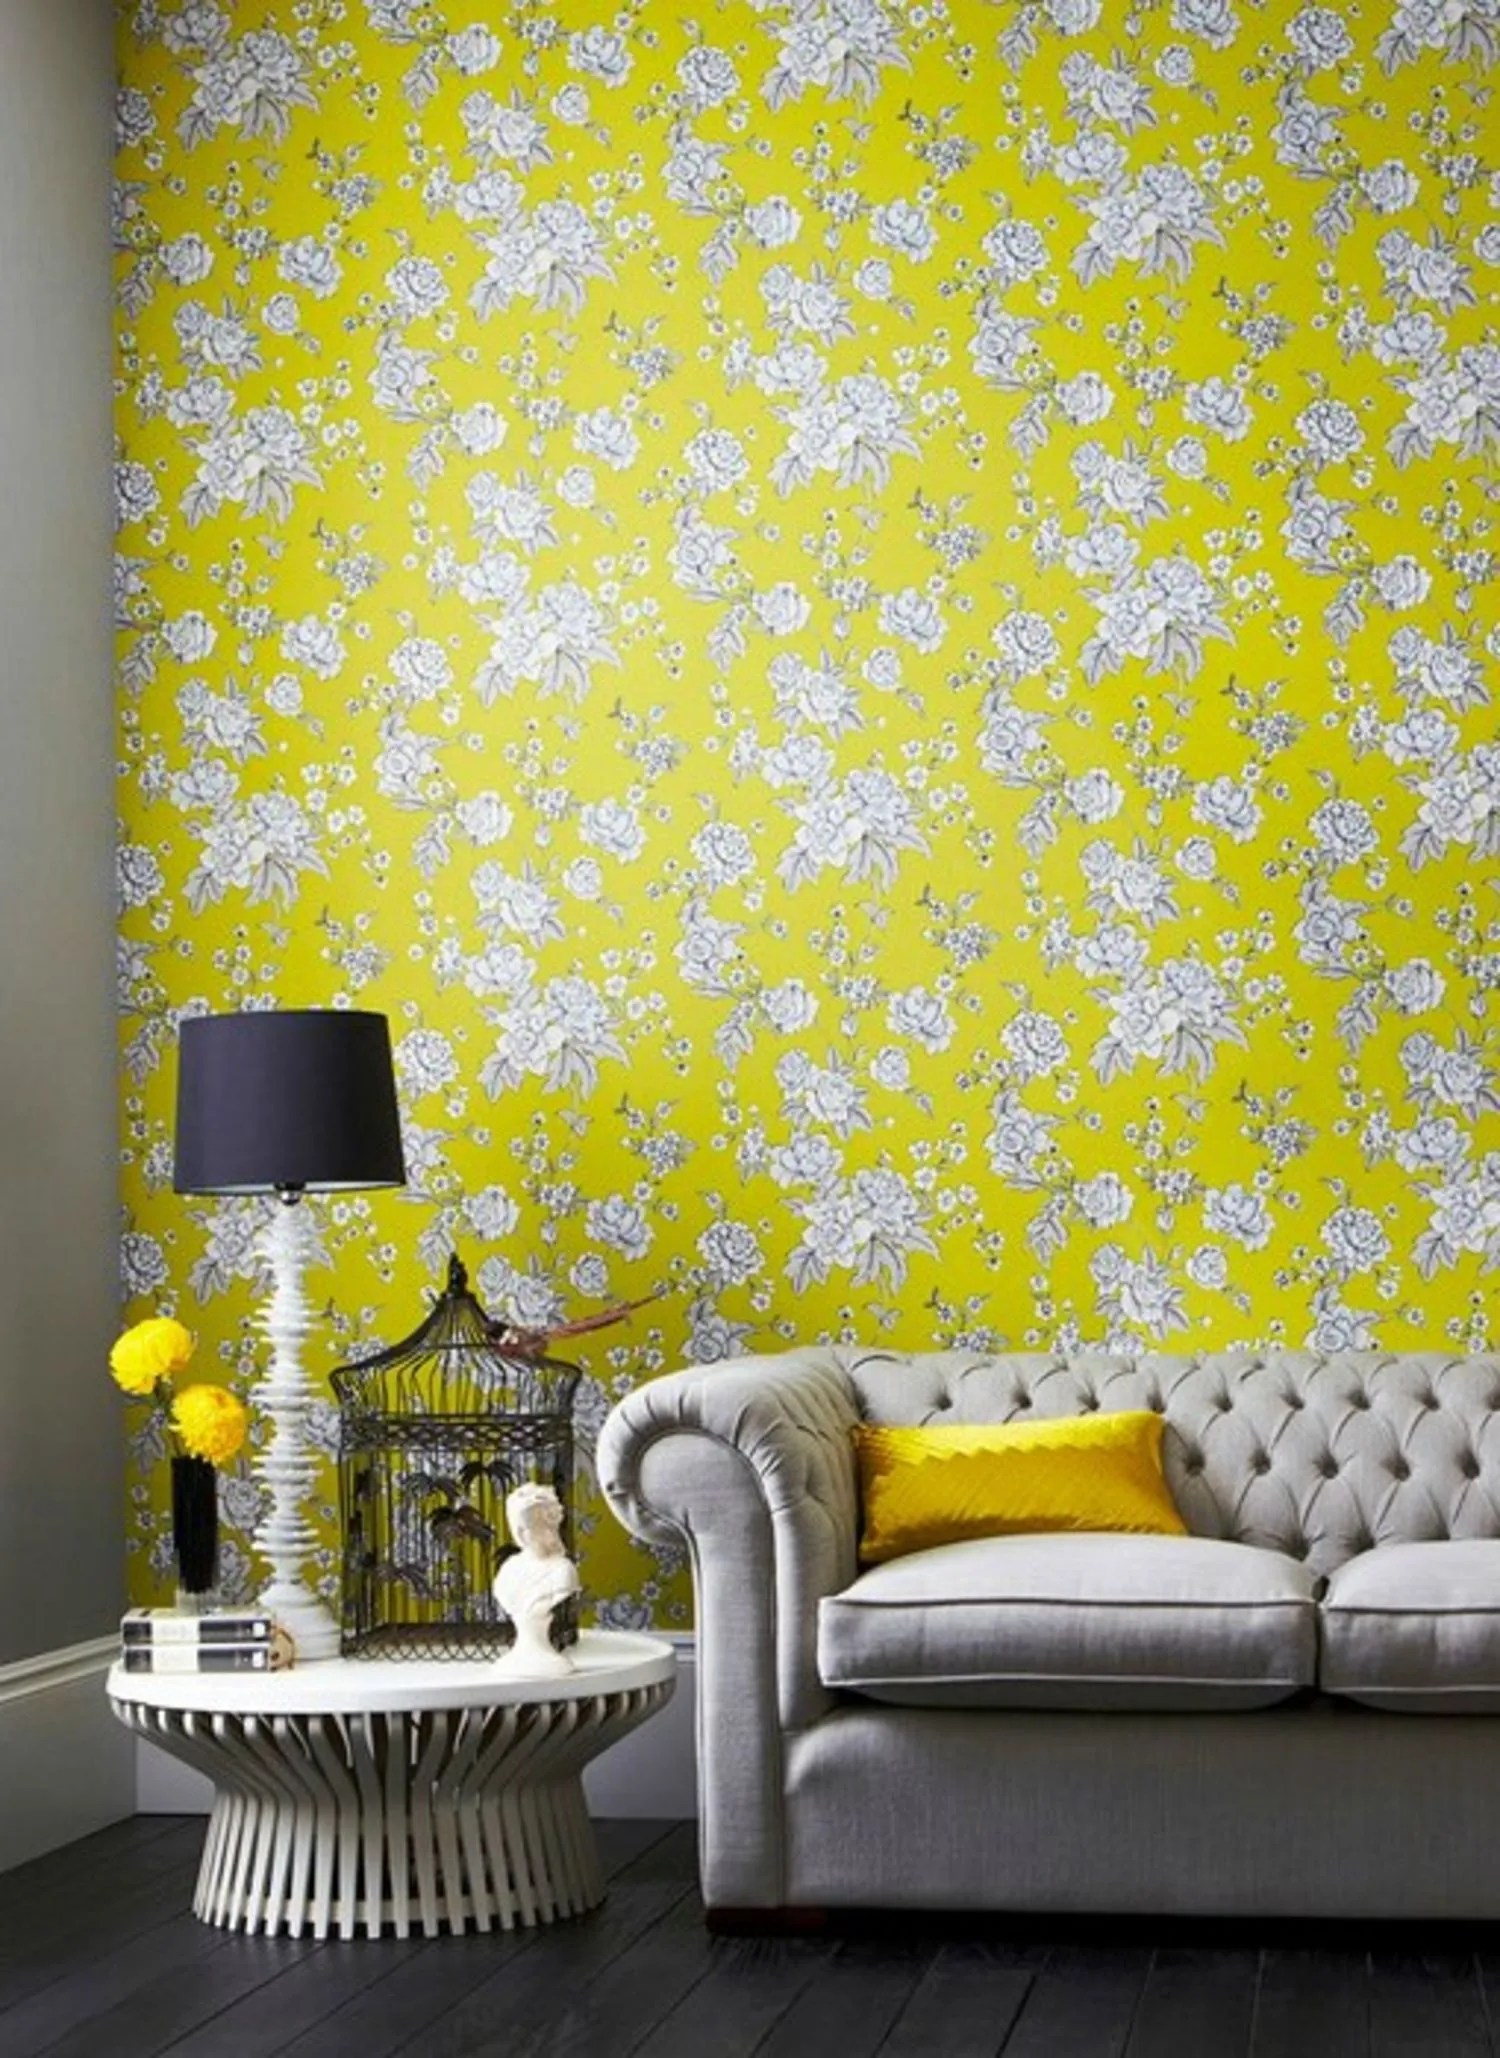 Removable Wallpaper Temporary Wallpapers for Renters and CommitmentPhobes  Glamour